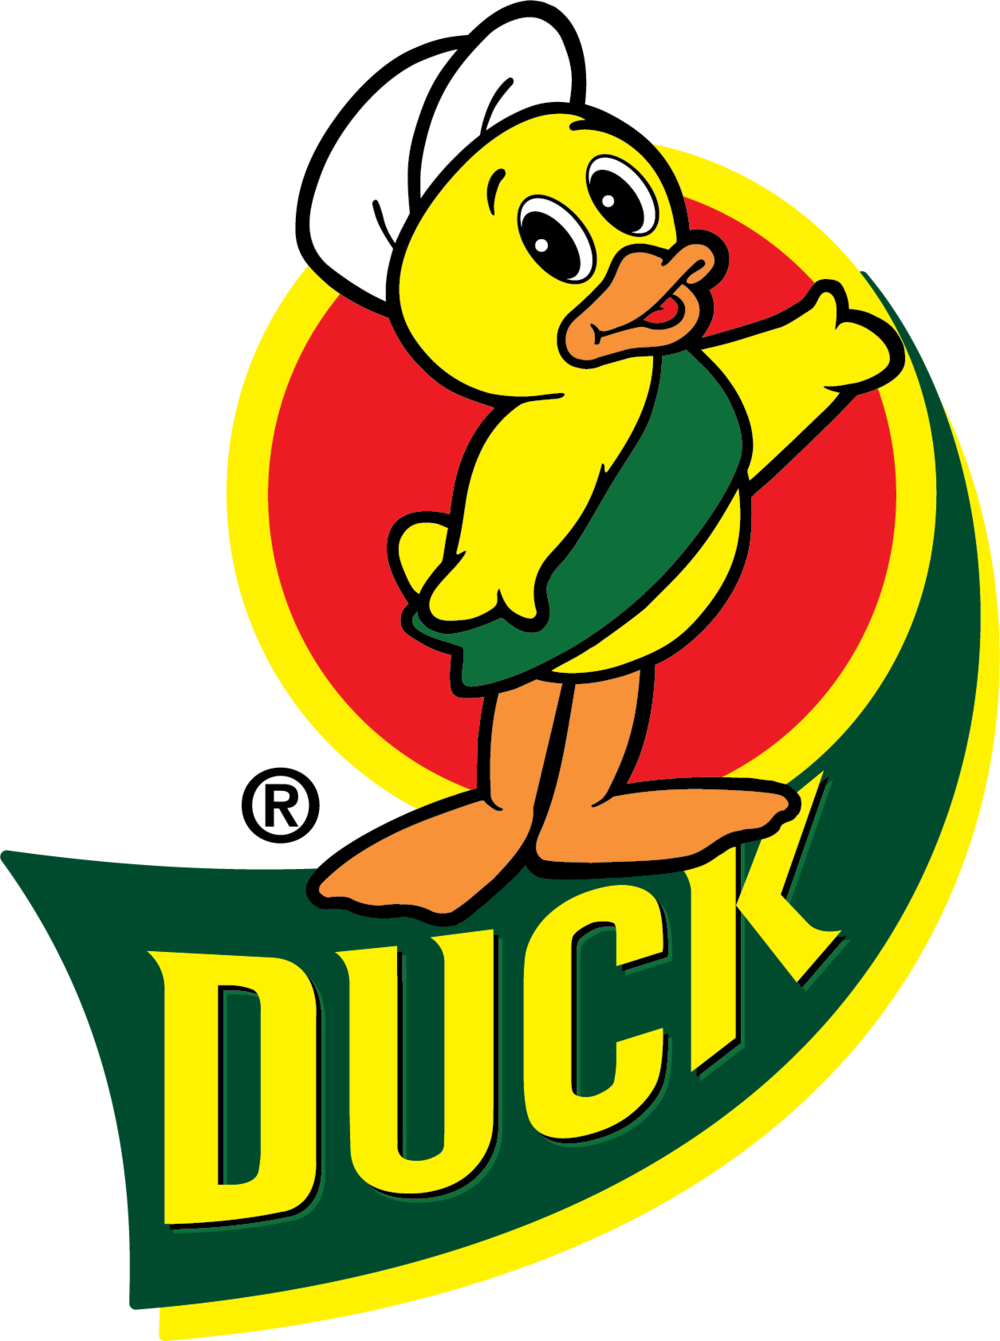 duck-4color.png